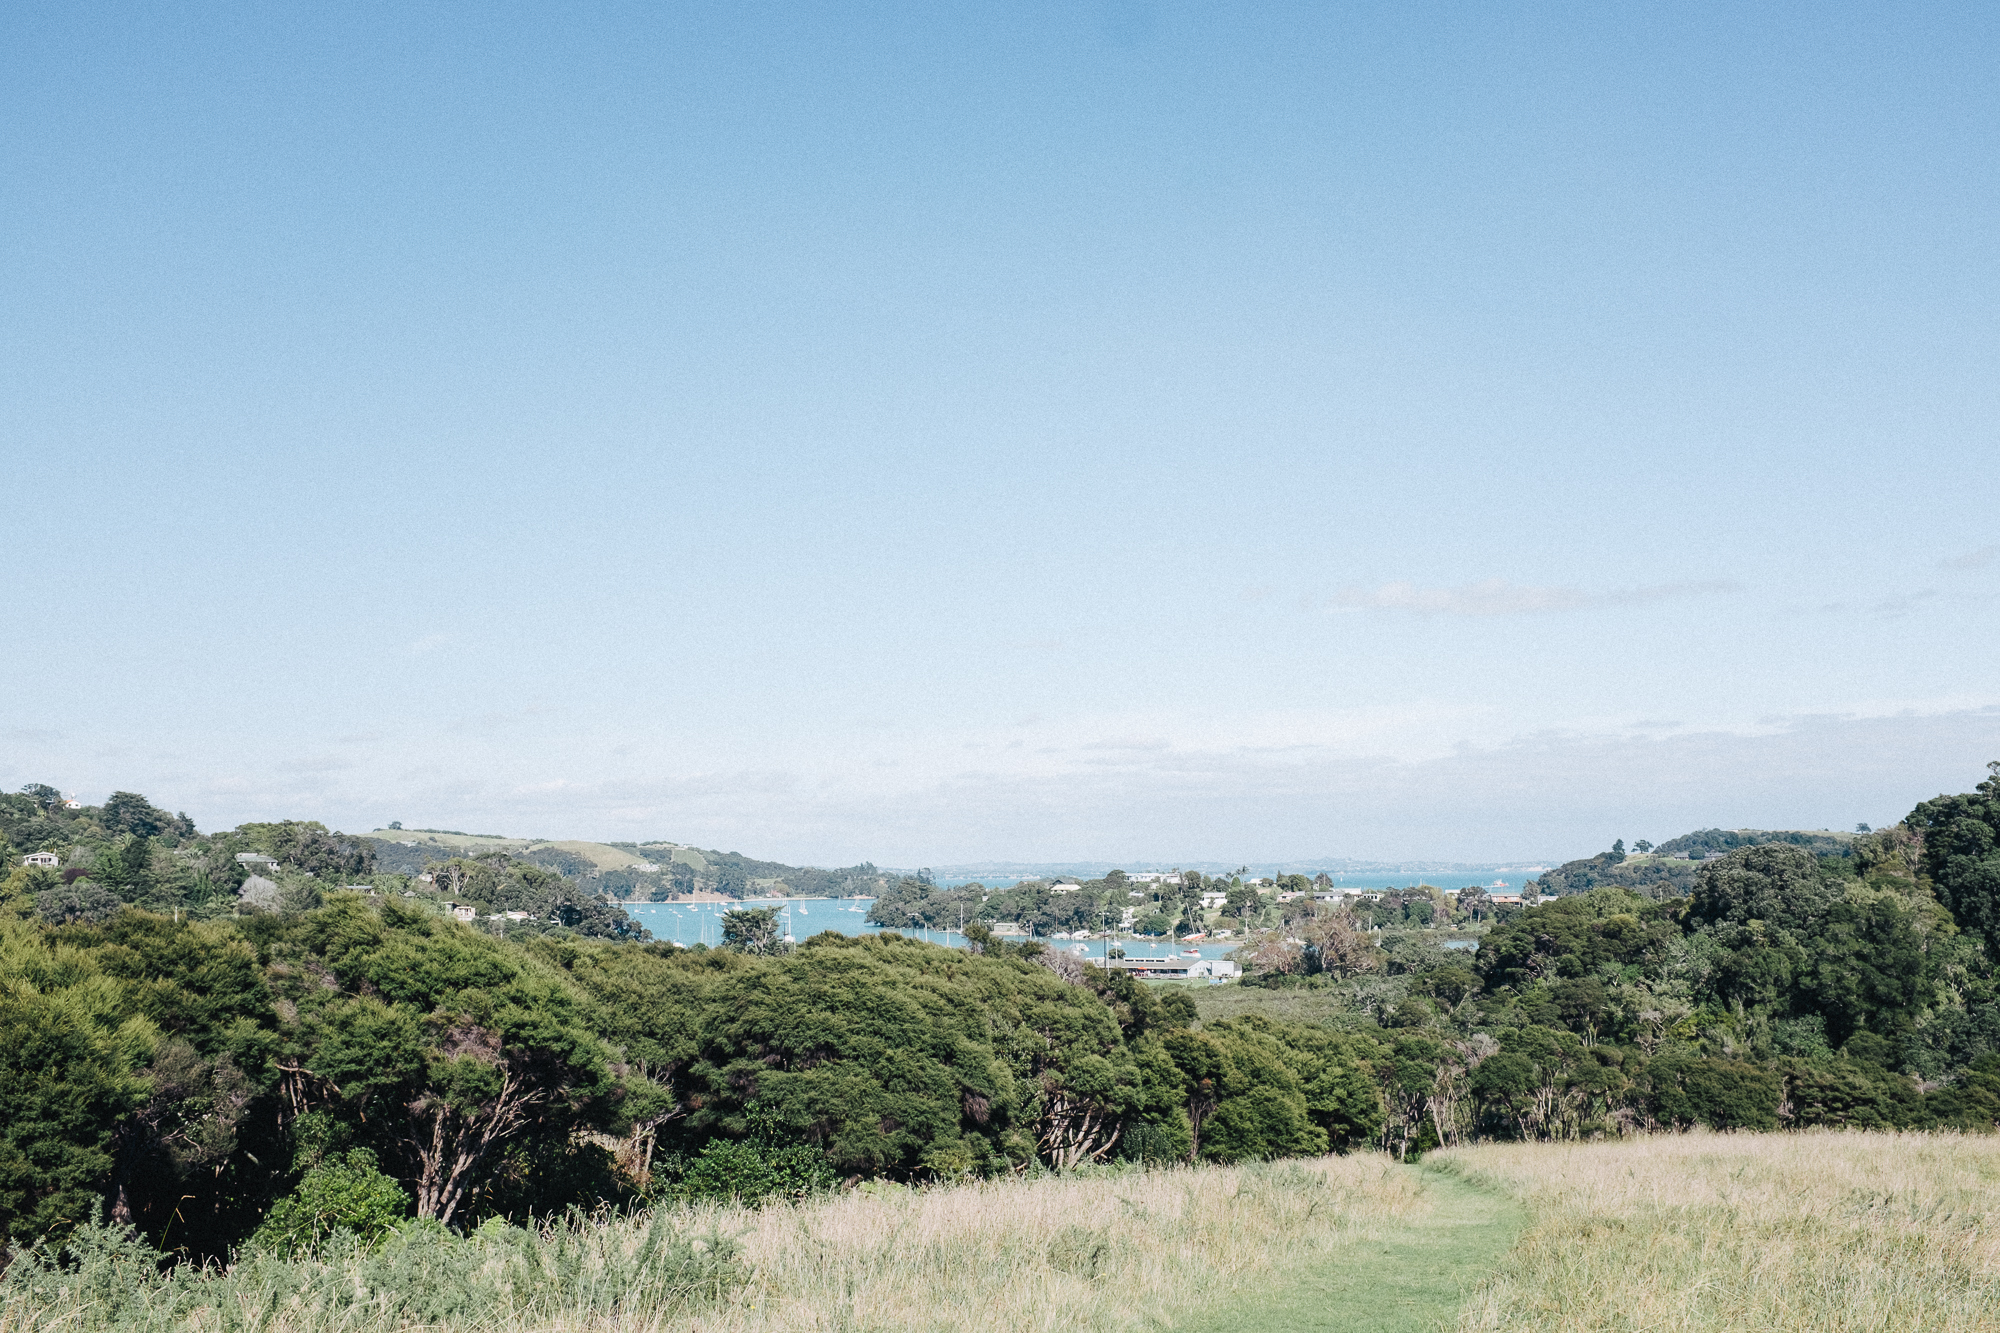 Looking down the hill at Te Toki reserve towards the causeway by leonie wise